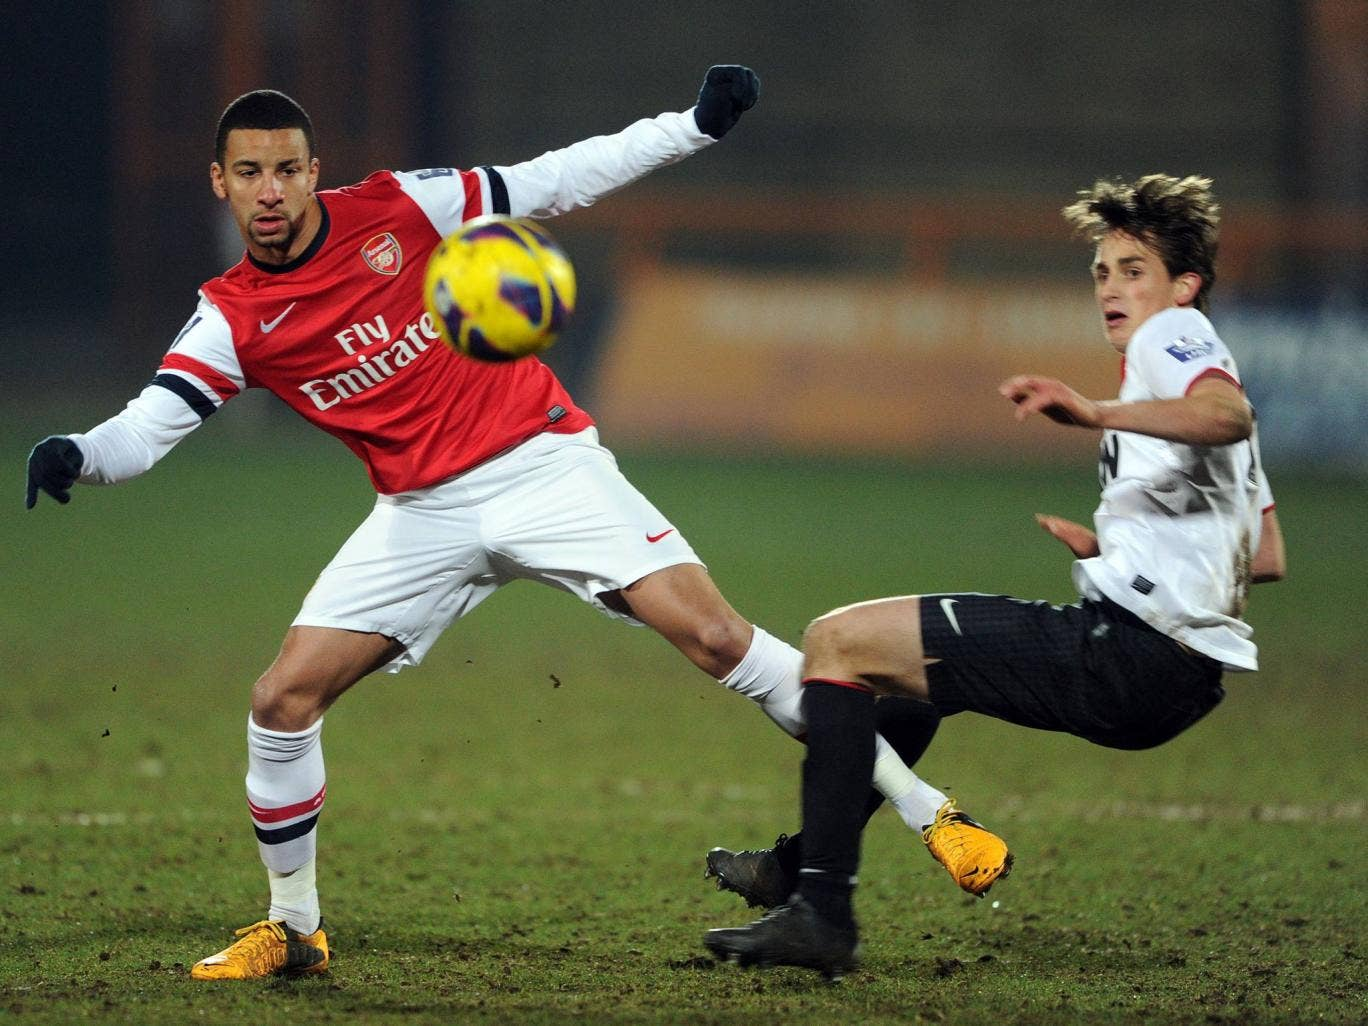 Manchester United youngster Adnan Januzaj pictured in an Under-21 match against Arsenal